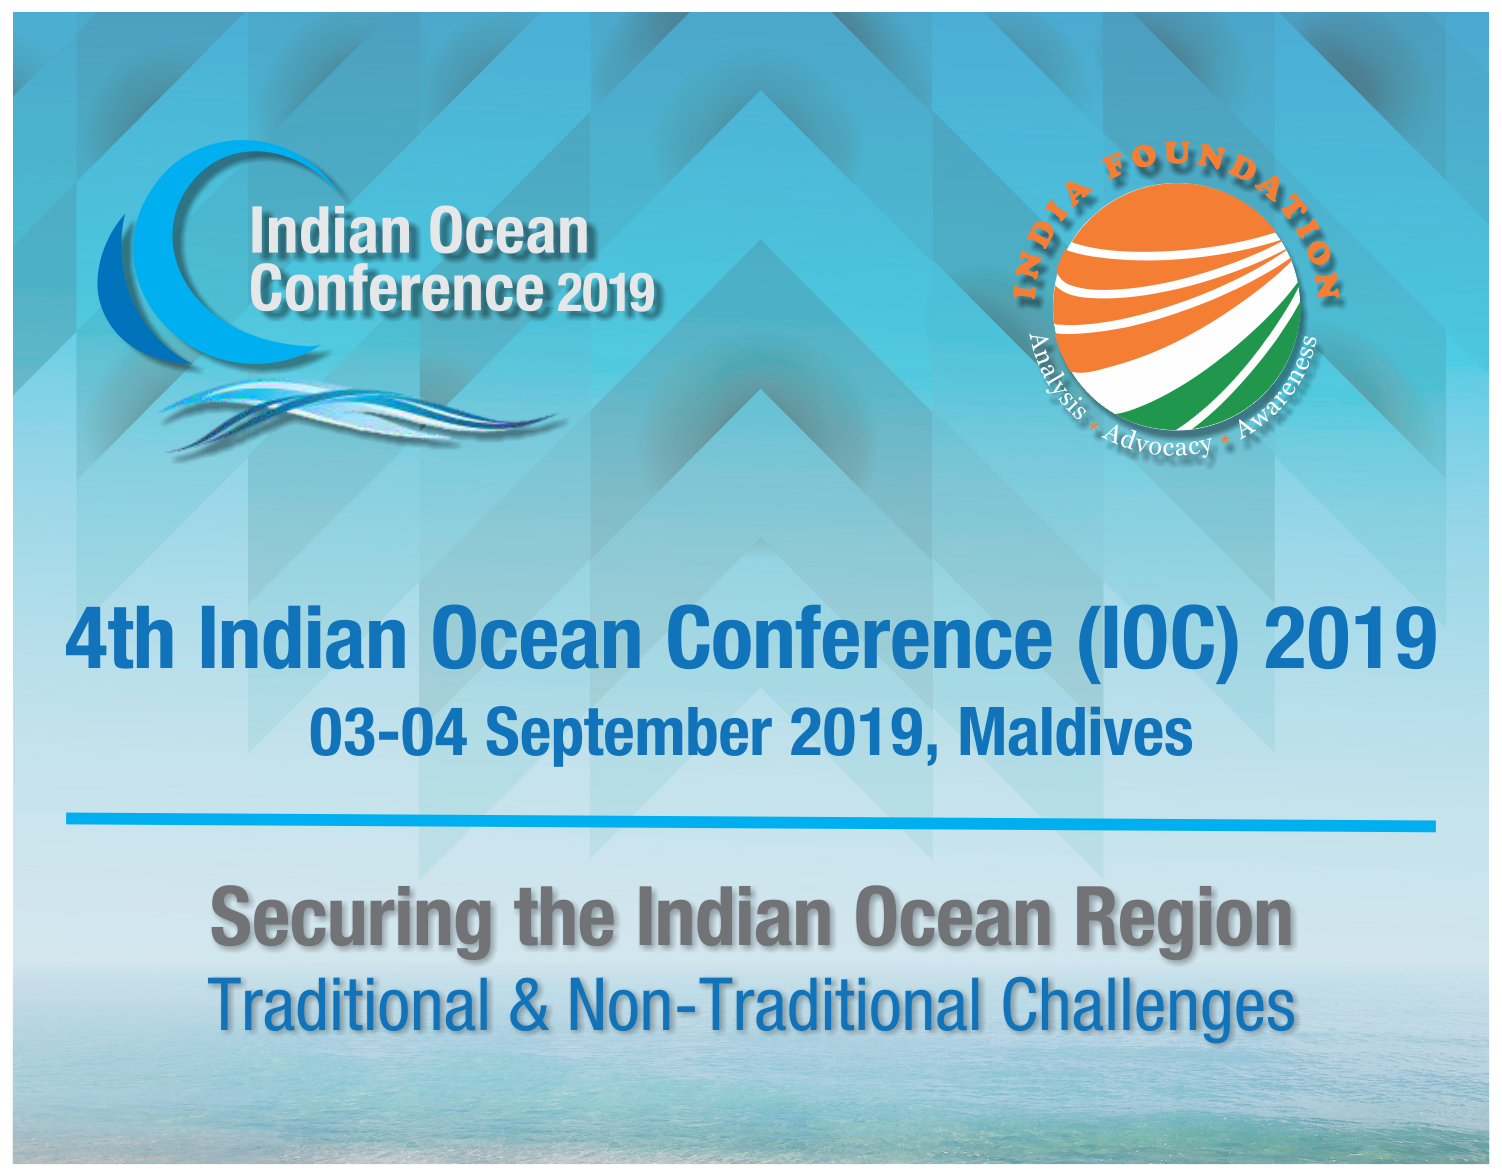 4th Indian Ocean Conference IOC 2019